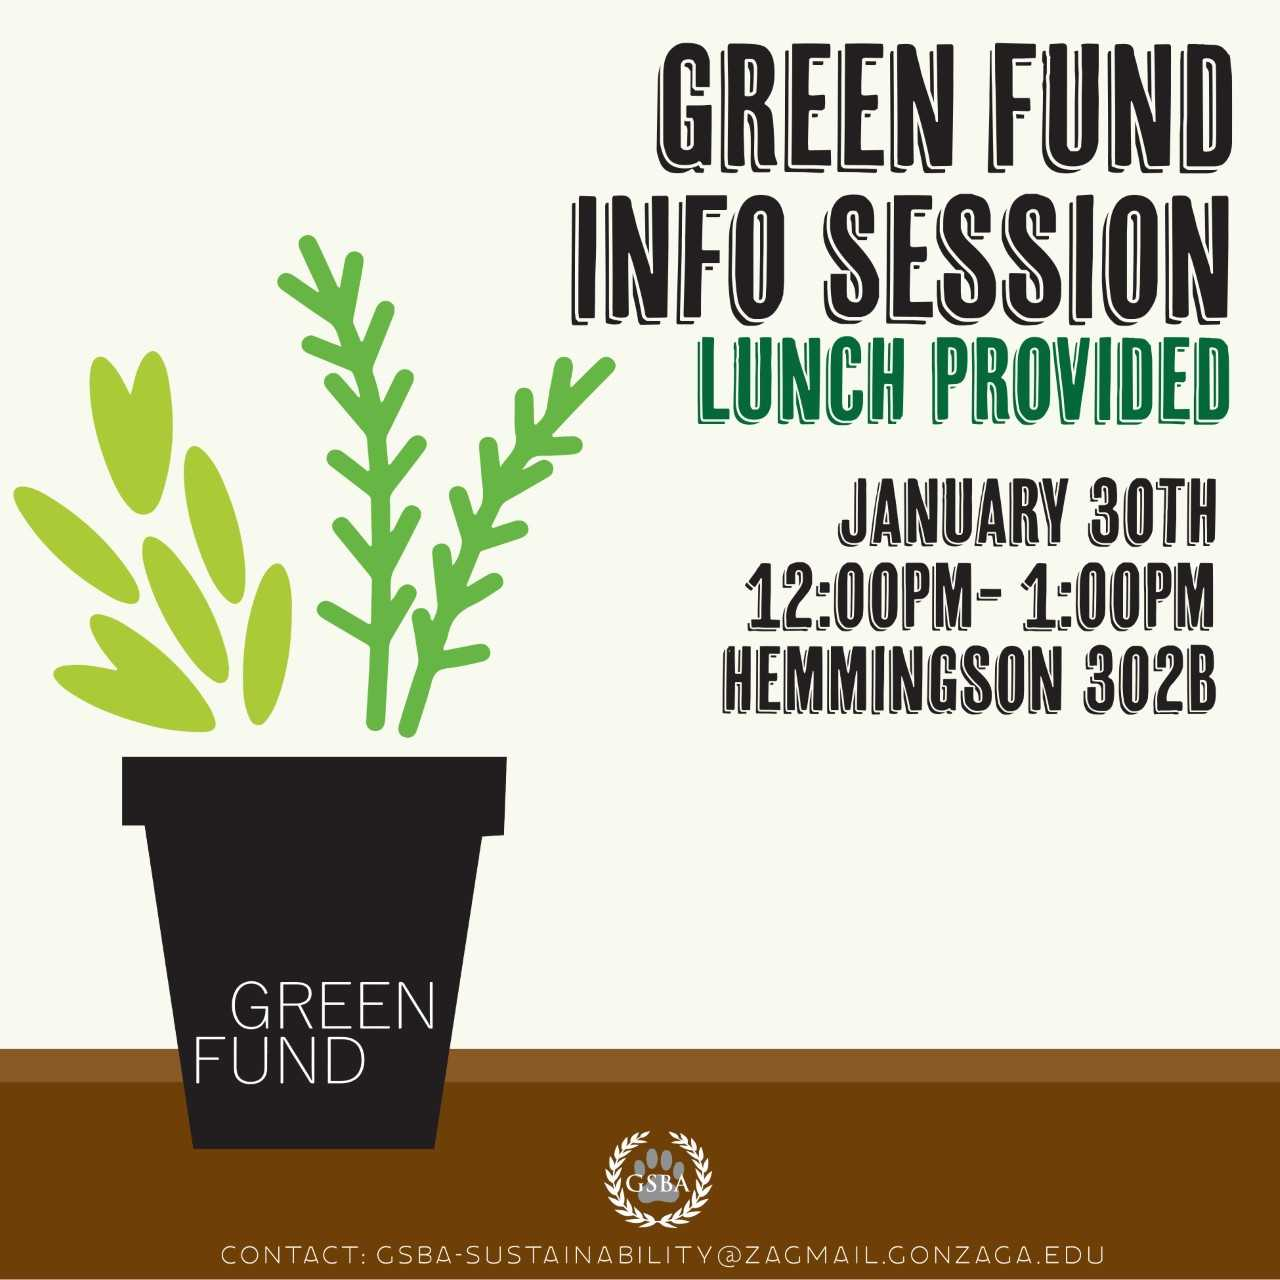 Information about the Green Fund